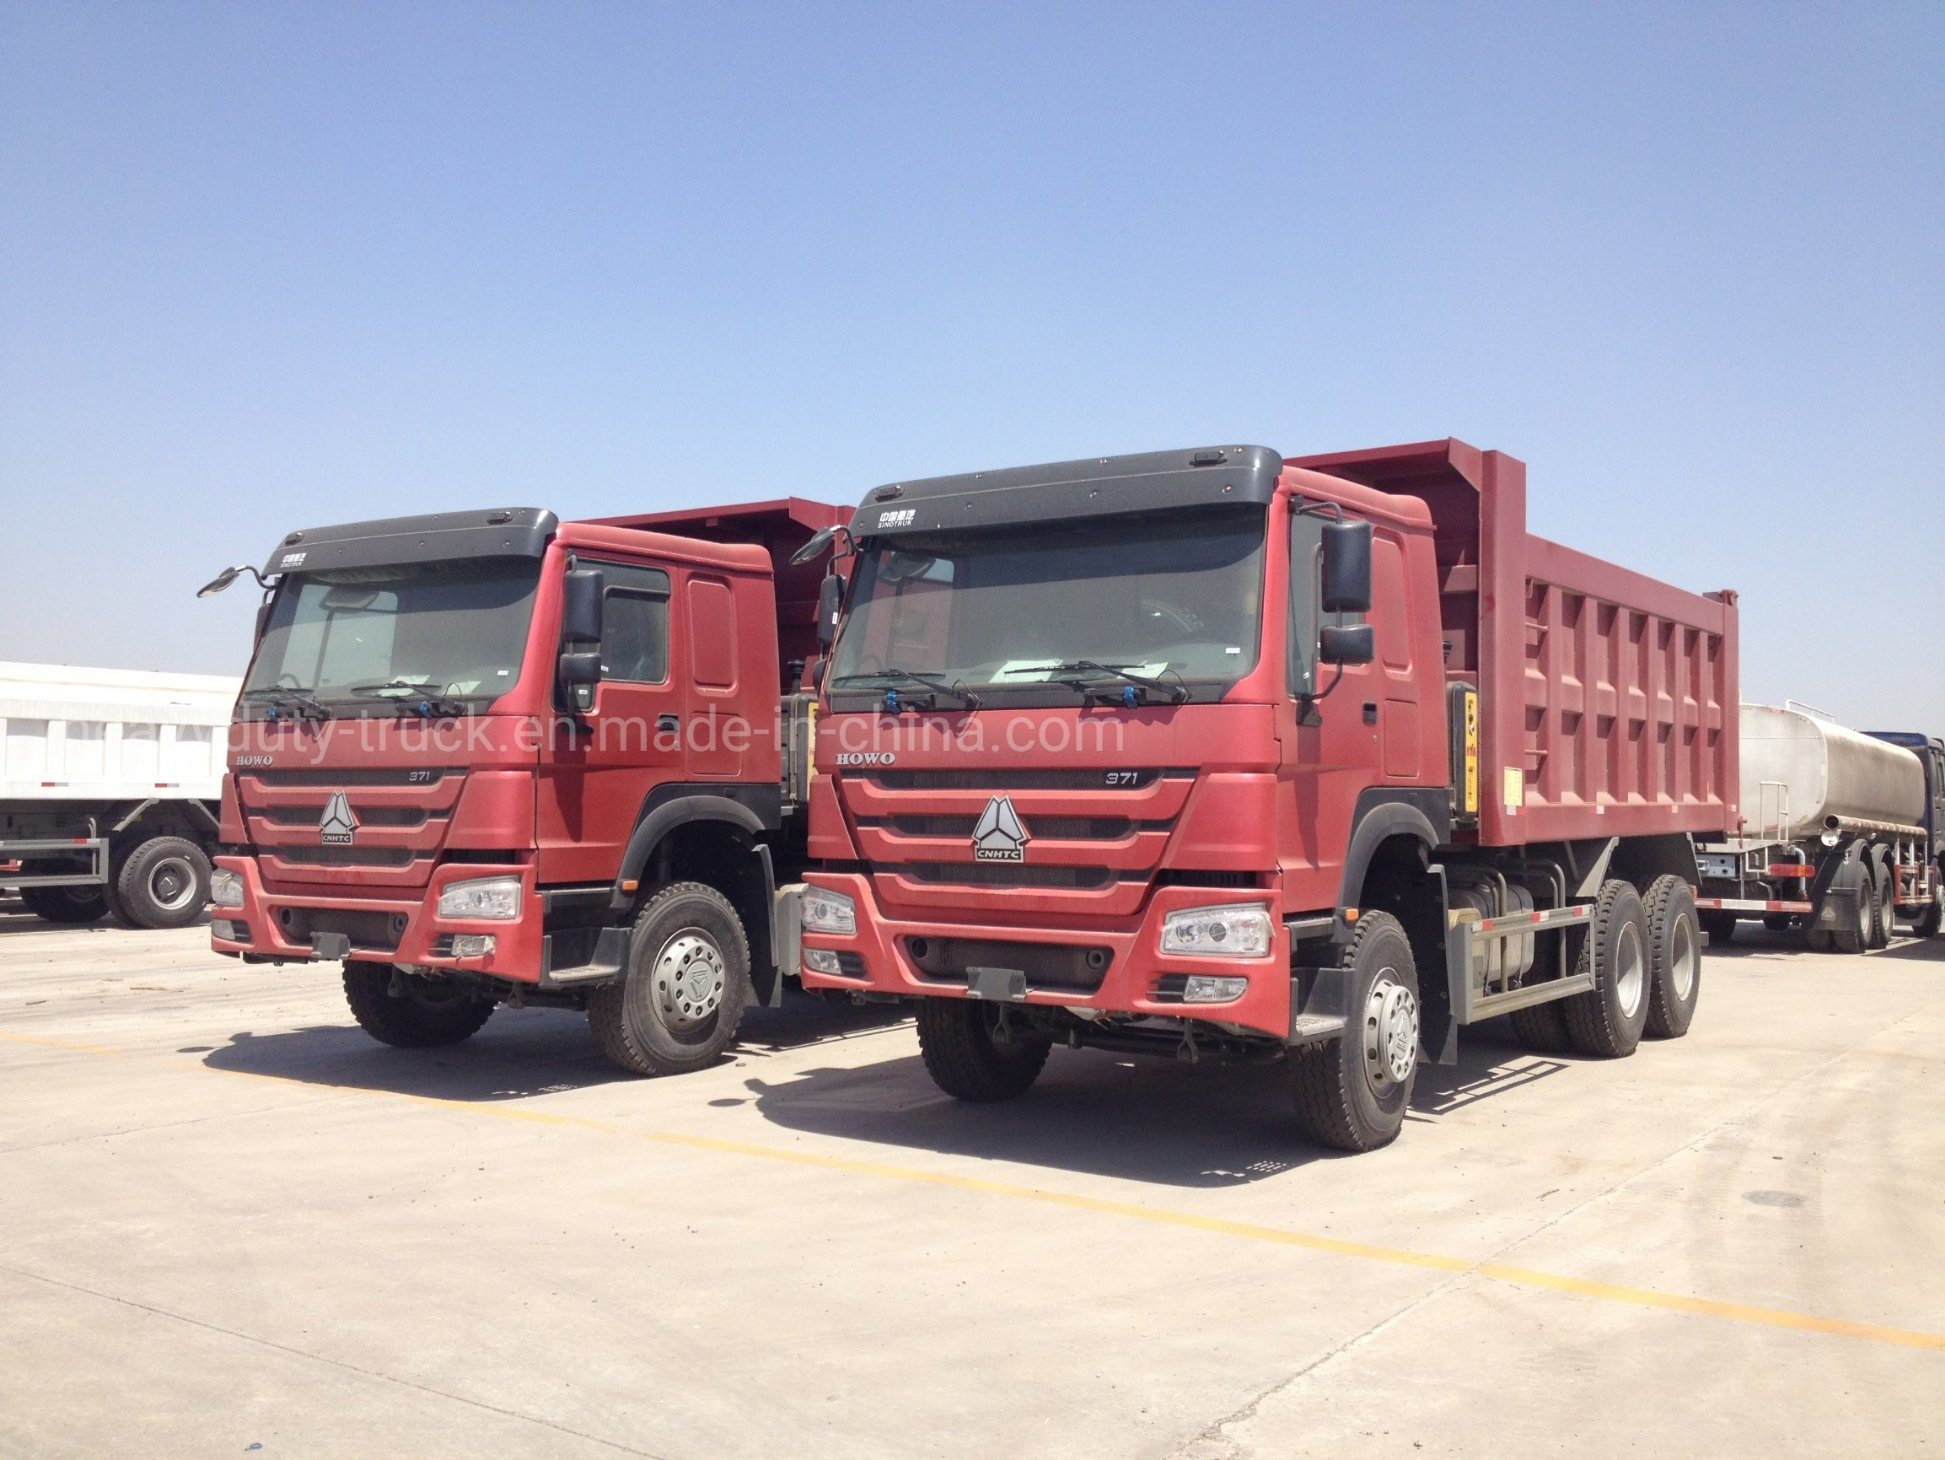 China Used Diesel 10 Tires 25 Tons 30 Tons 40 Tons Dump Tipper Truck For Sale China Used Howo Dump Truck Used Tipper Truck